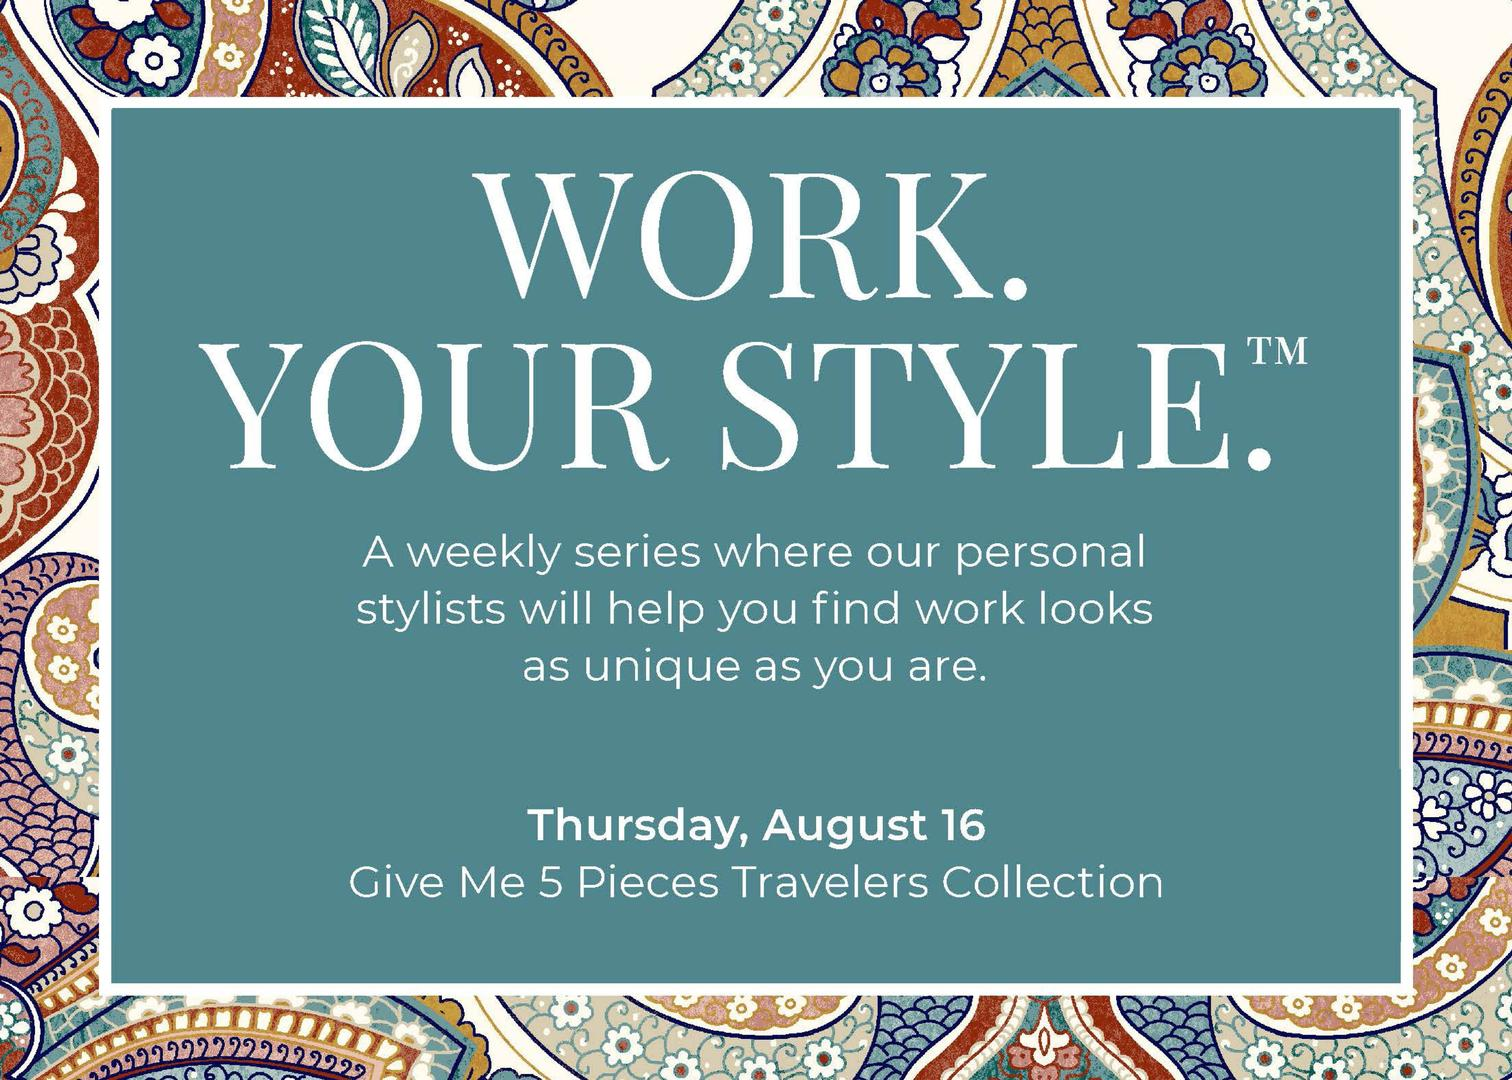 Mount Pleasant Towne Centre, Work You Style- Give Me 5 Pieces Travelers Collection  Event Image: 1732 Towne Centre Way, Mount Pleasant, SC 29464, US